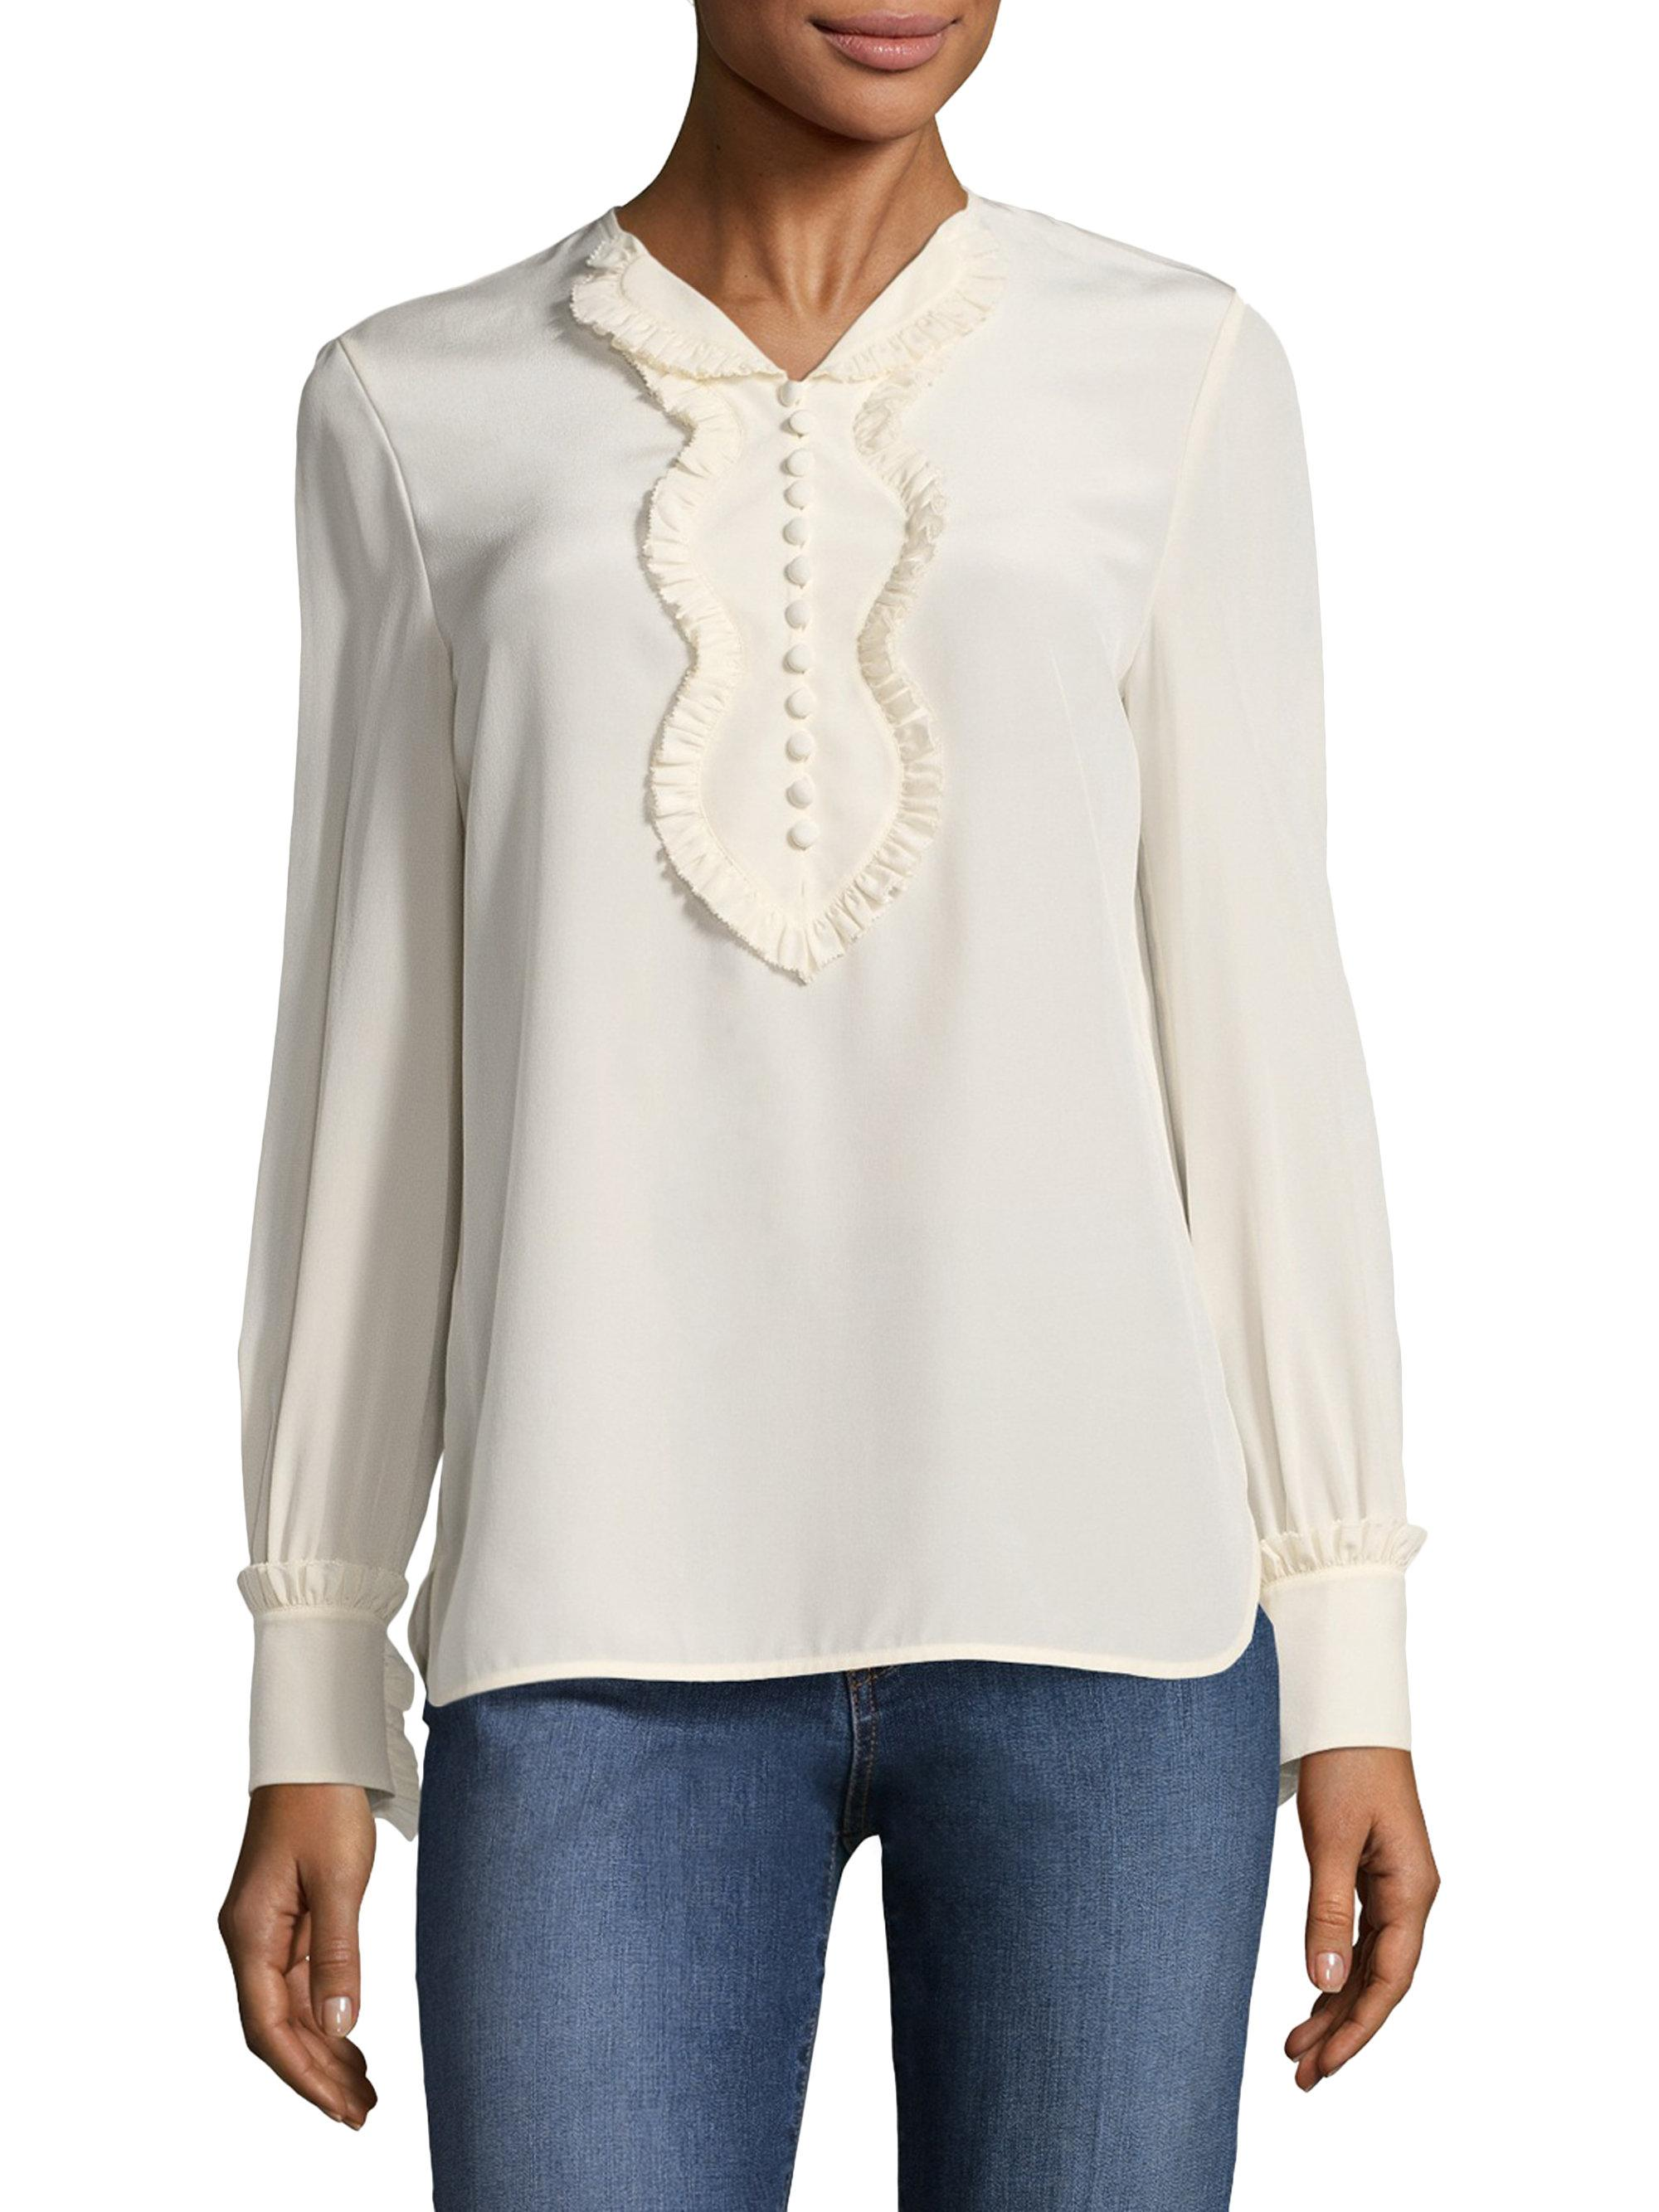 3dc2c09f04a4a Gallery. Previously sold at  Saks Fifth Avenue · Women s White Lace Tanks  Women s Sweetheart Tops ...